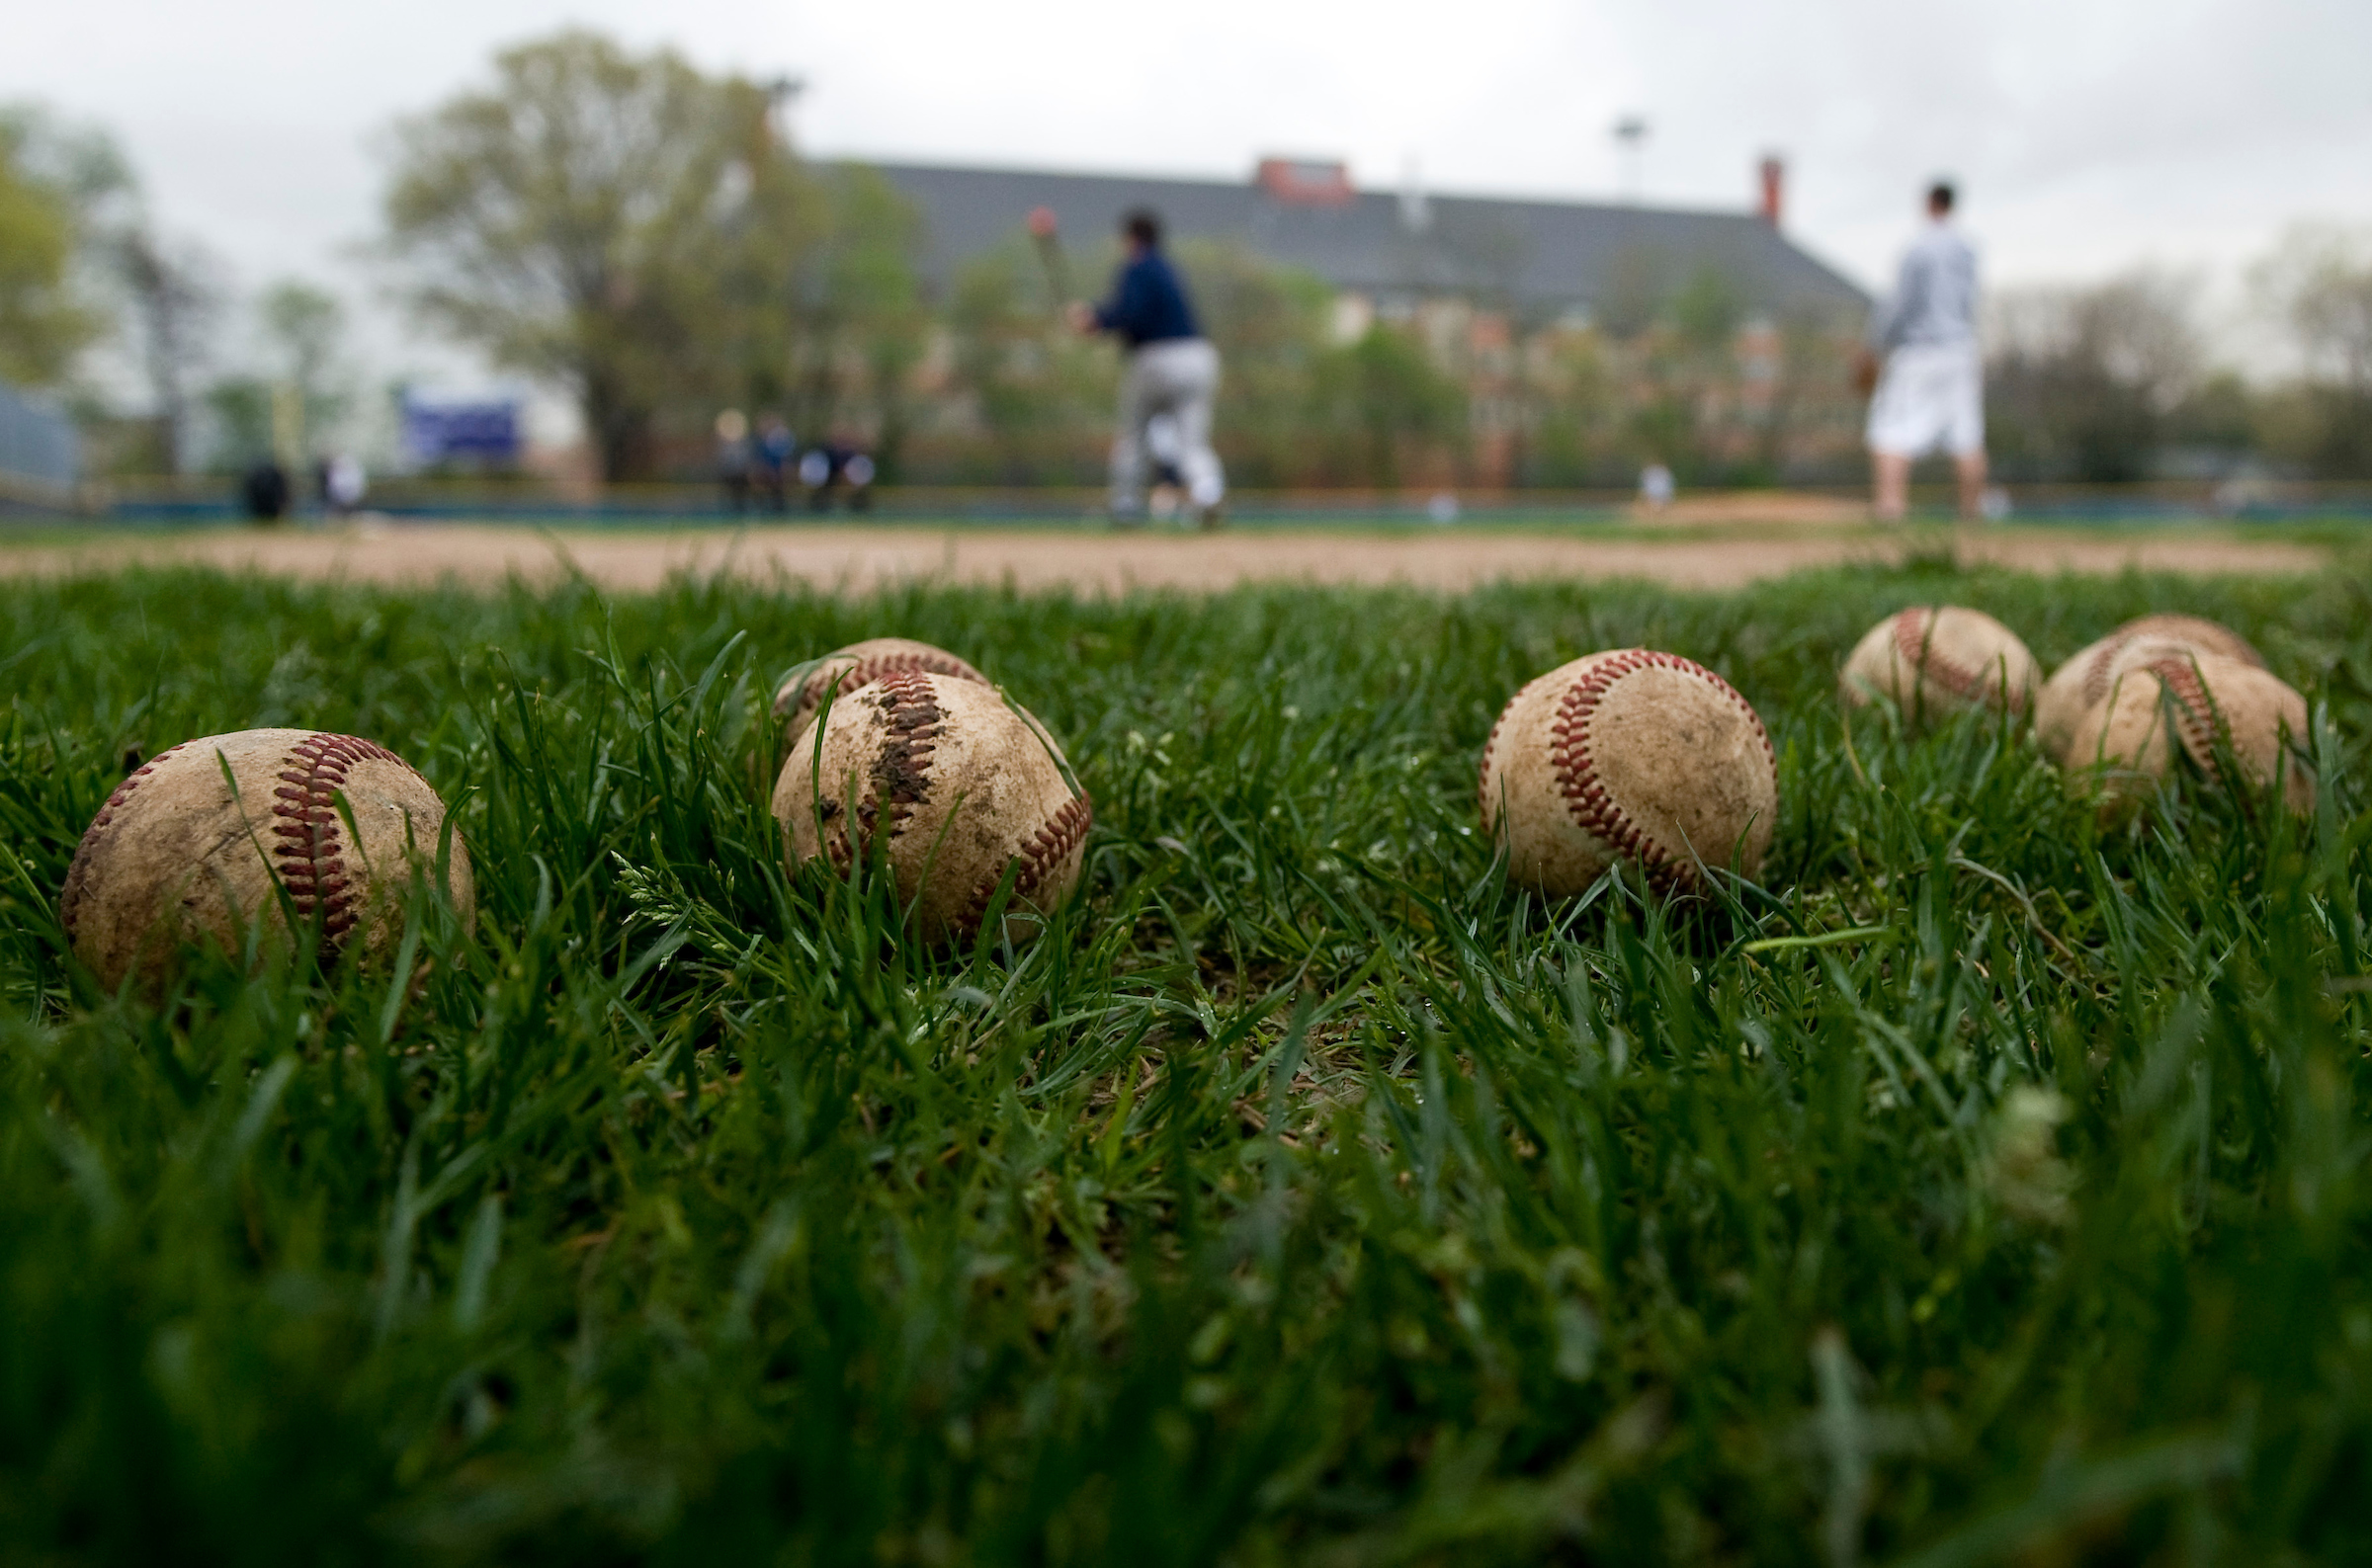 Wet and muddy baseballs sit in the grass as the Democrats baseball team practice in the rain for the Congressional Baseball game at the Hamilton School in NE Washington on Wednesday, April 22, 2009.